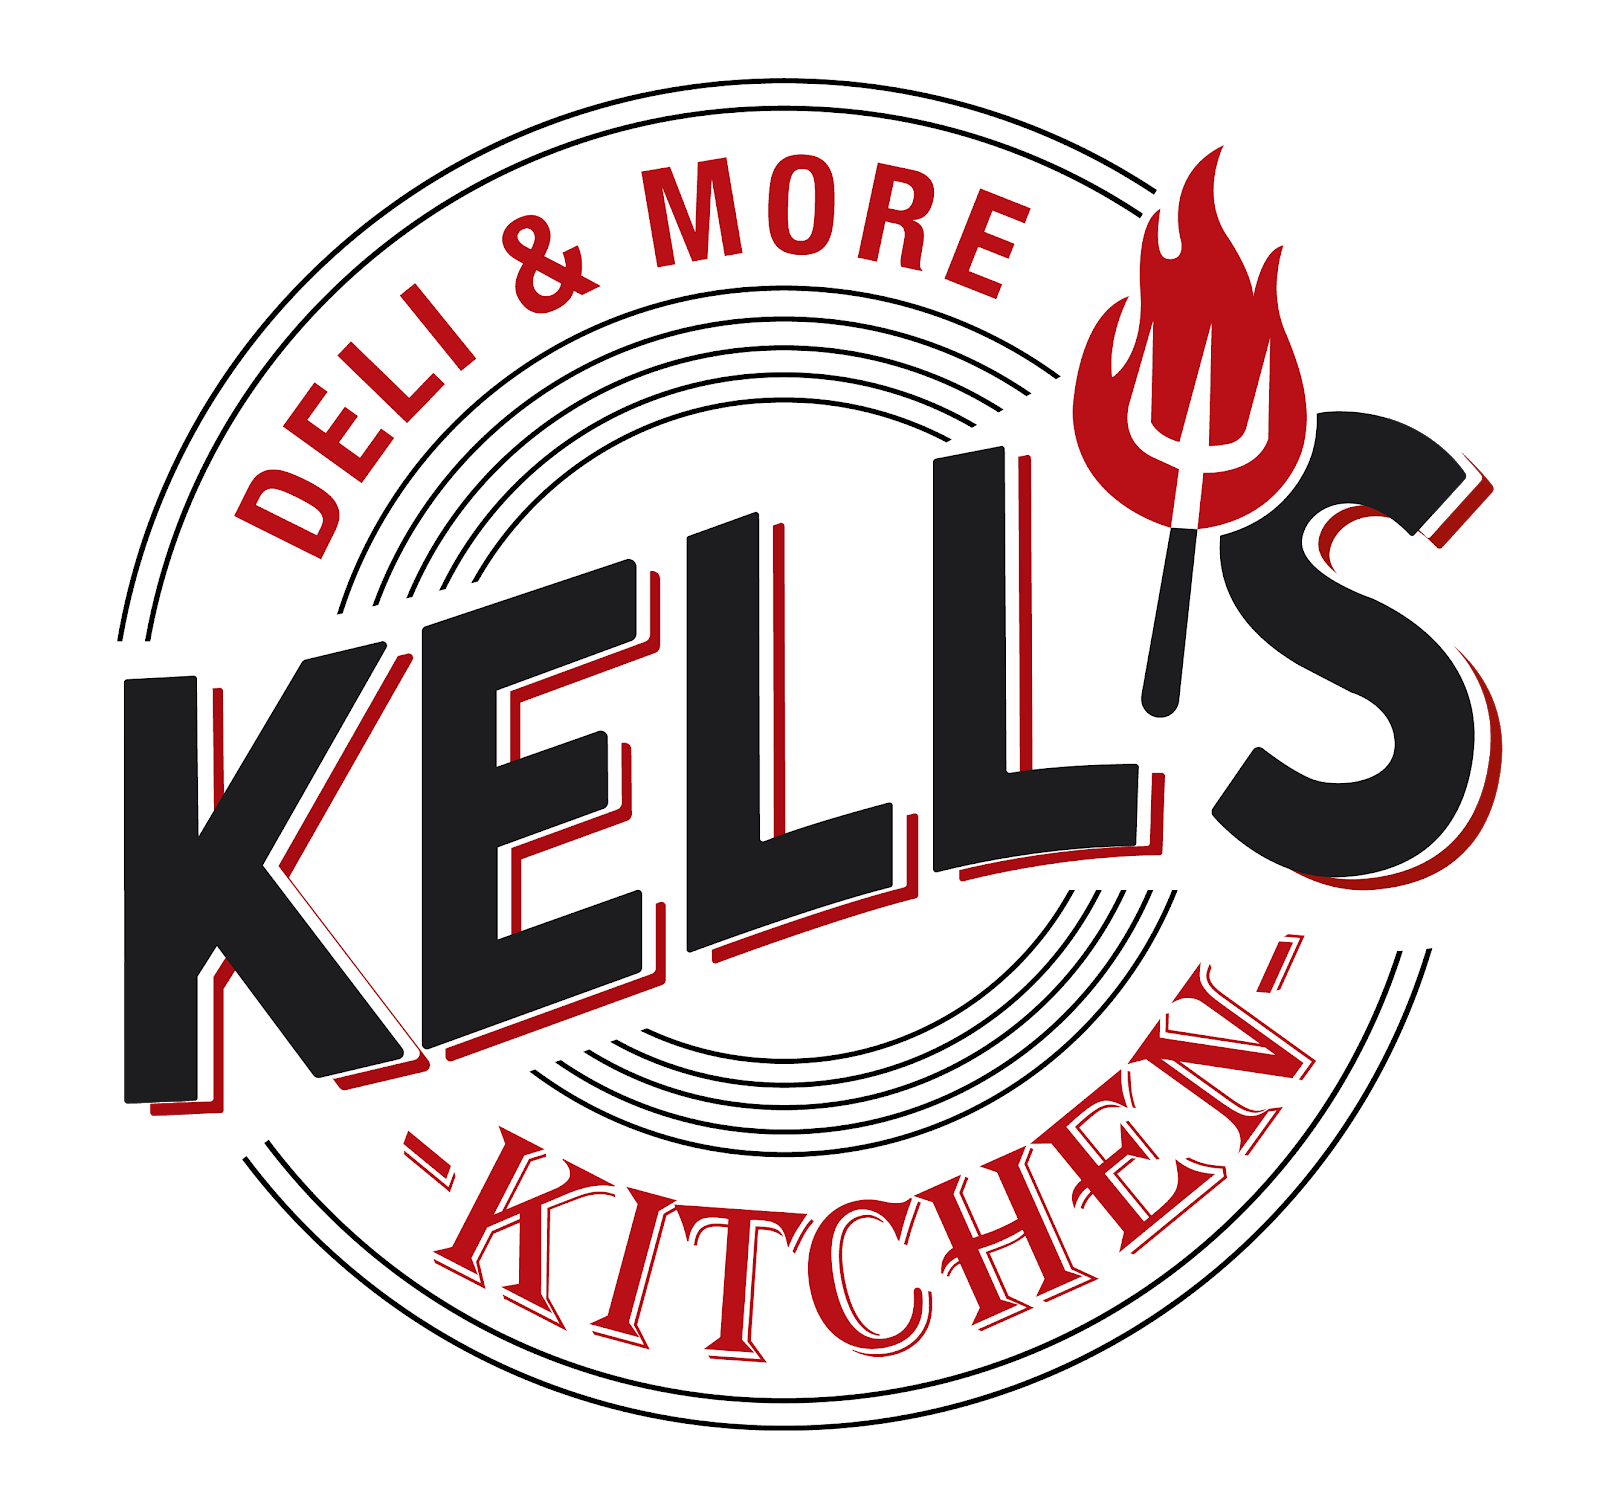 'We Make It Nice': Kell's Kitchen opens Deli for business in Patchogue, NY